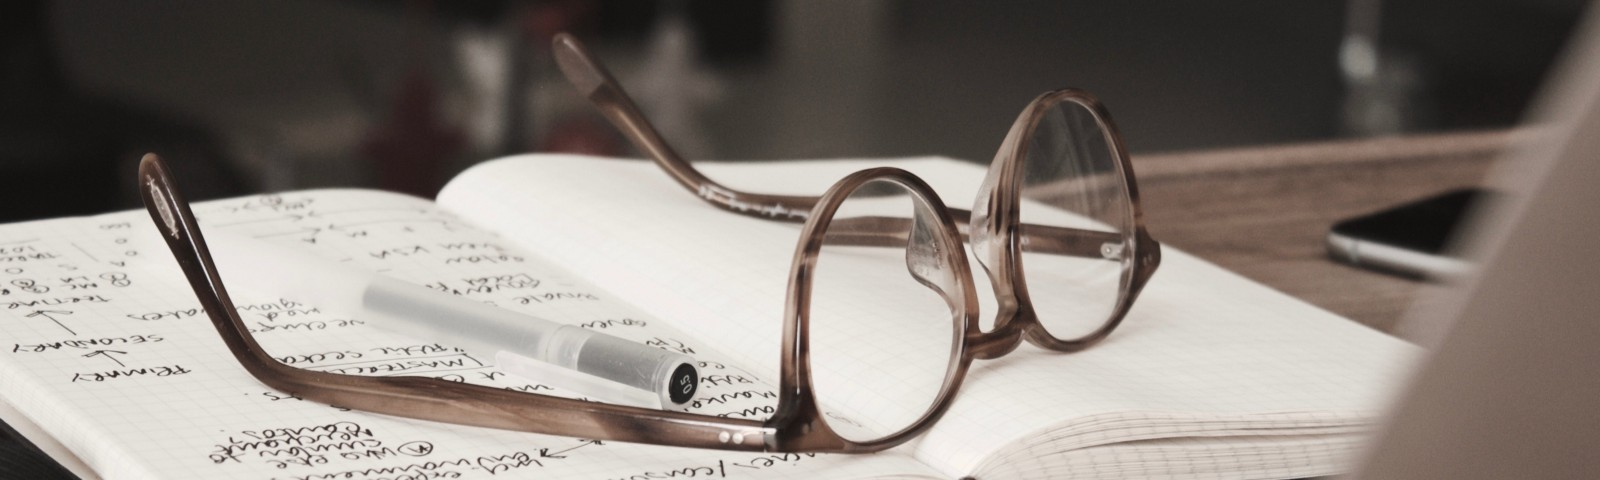 A pair of glasses and a black pen rests on an scribbled open notebook